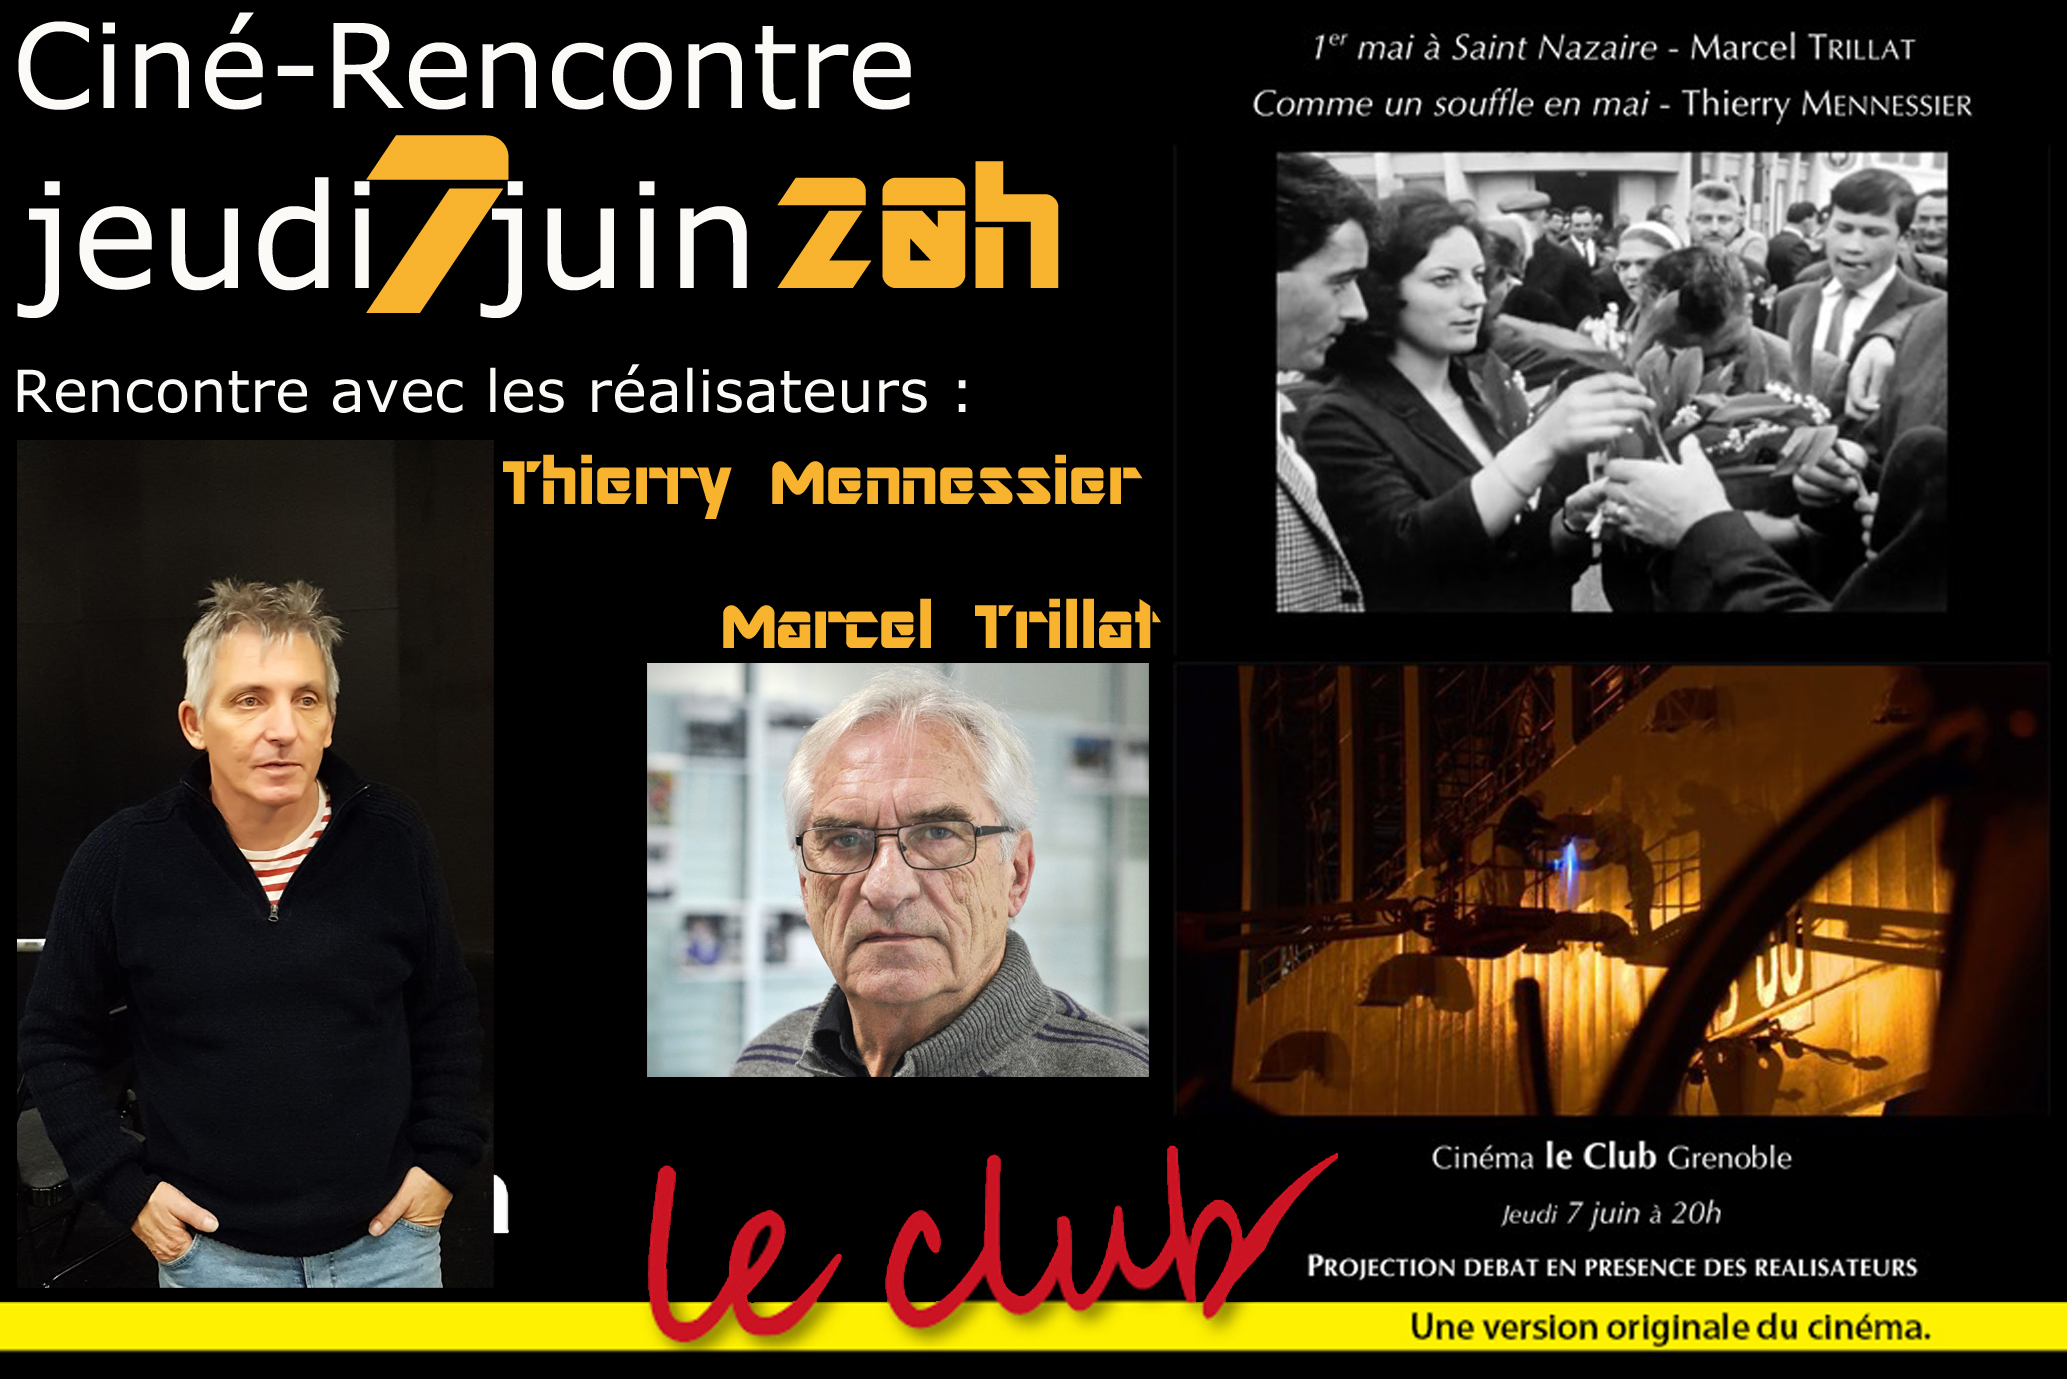 www senior club rencontre com evere